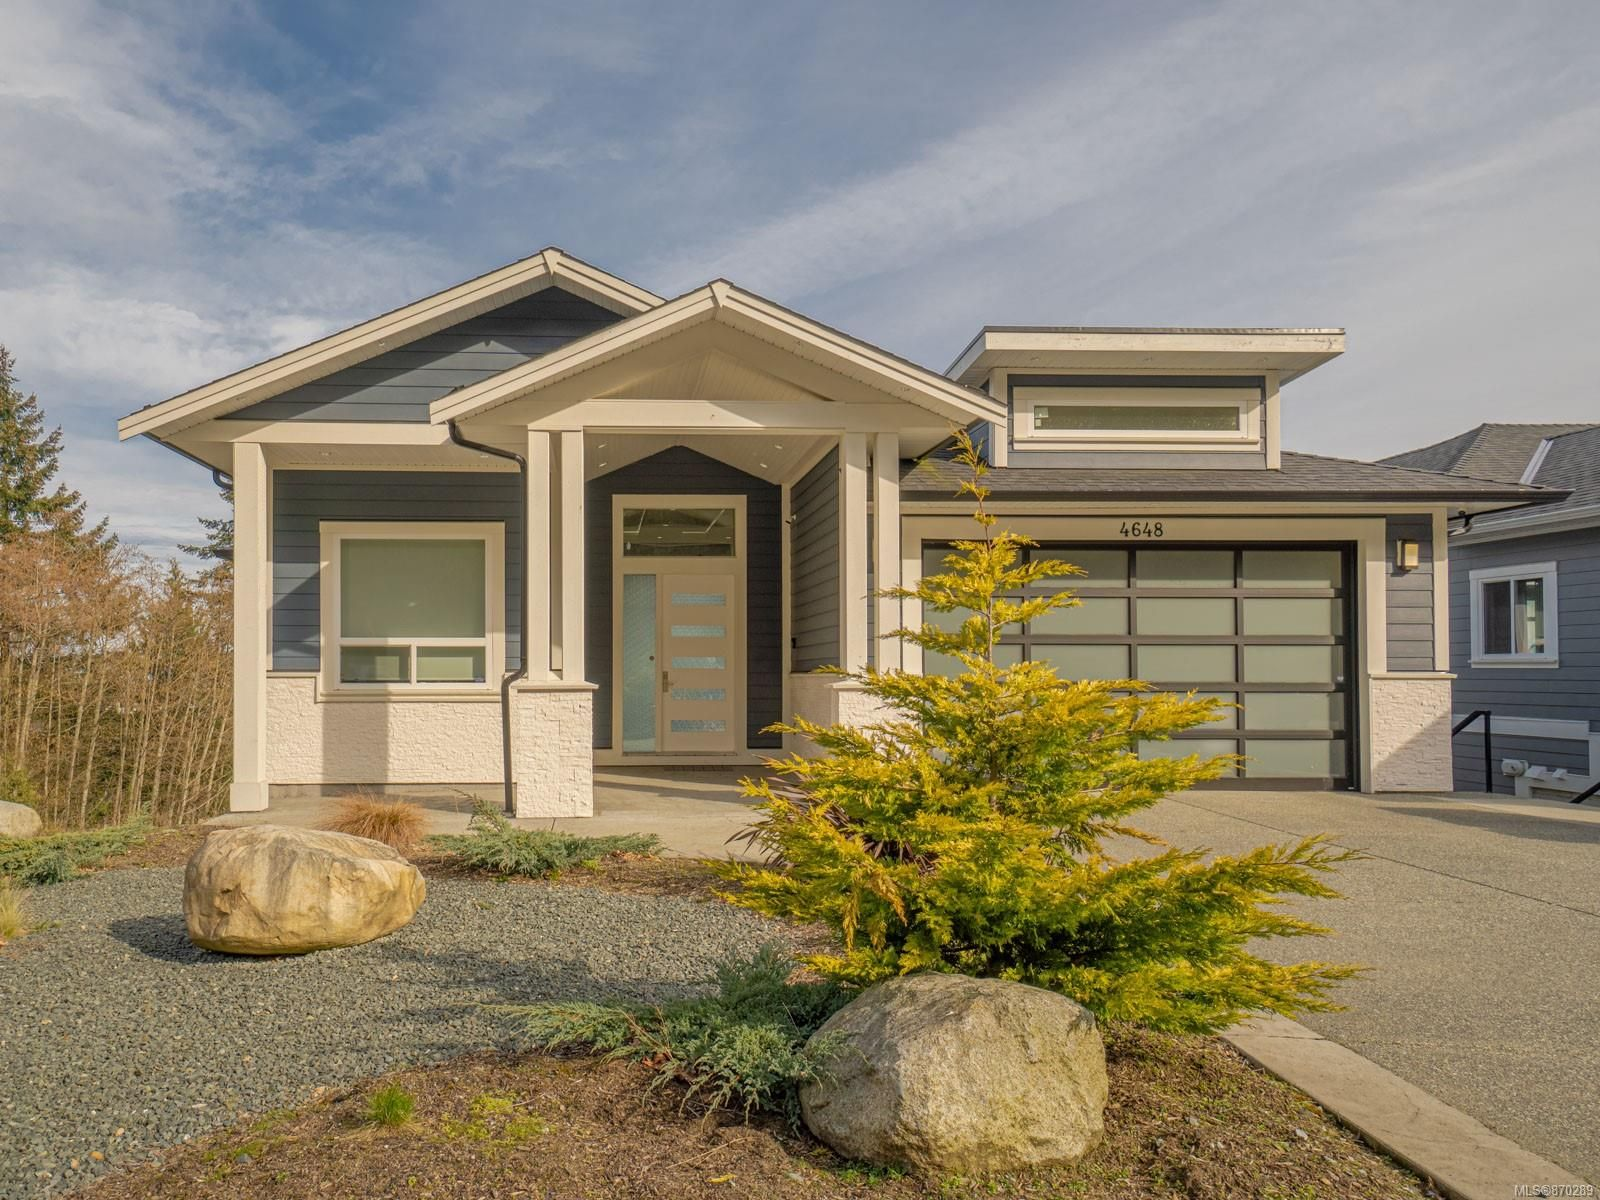 Main Photo: 4648 Sheridan Ridge Rd in : Na North Nanaimo House for sale (Nanaimo)  : MLS®# 870289